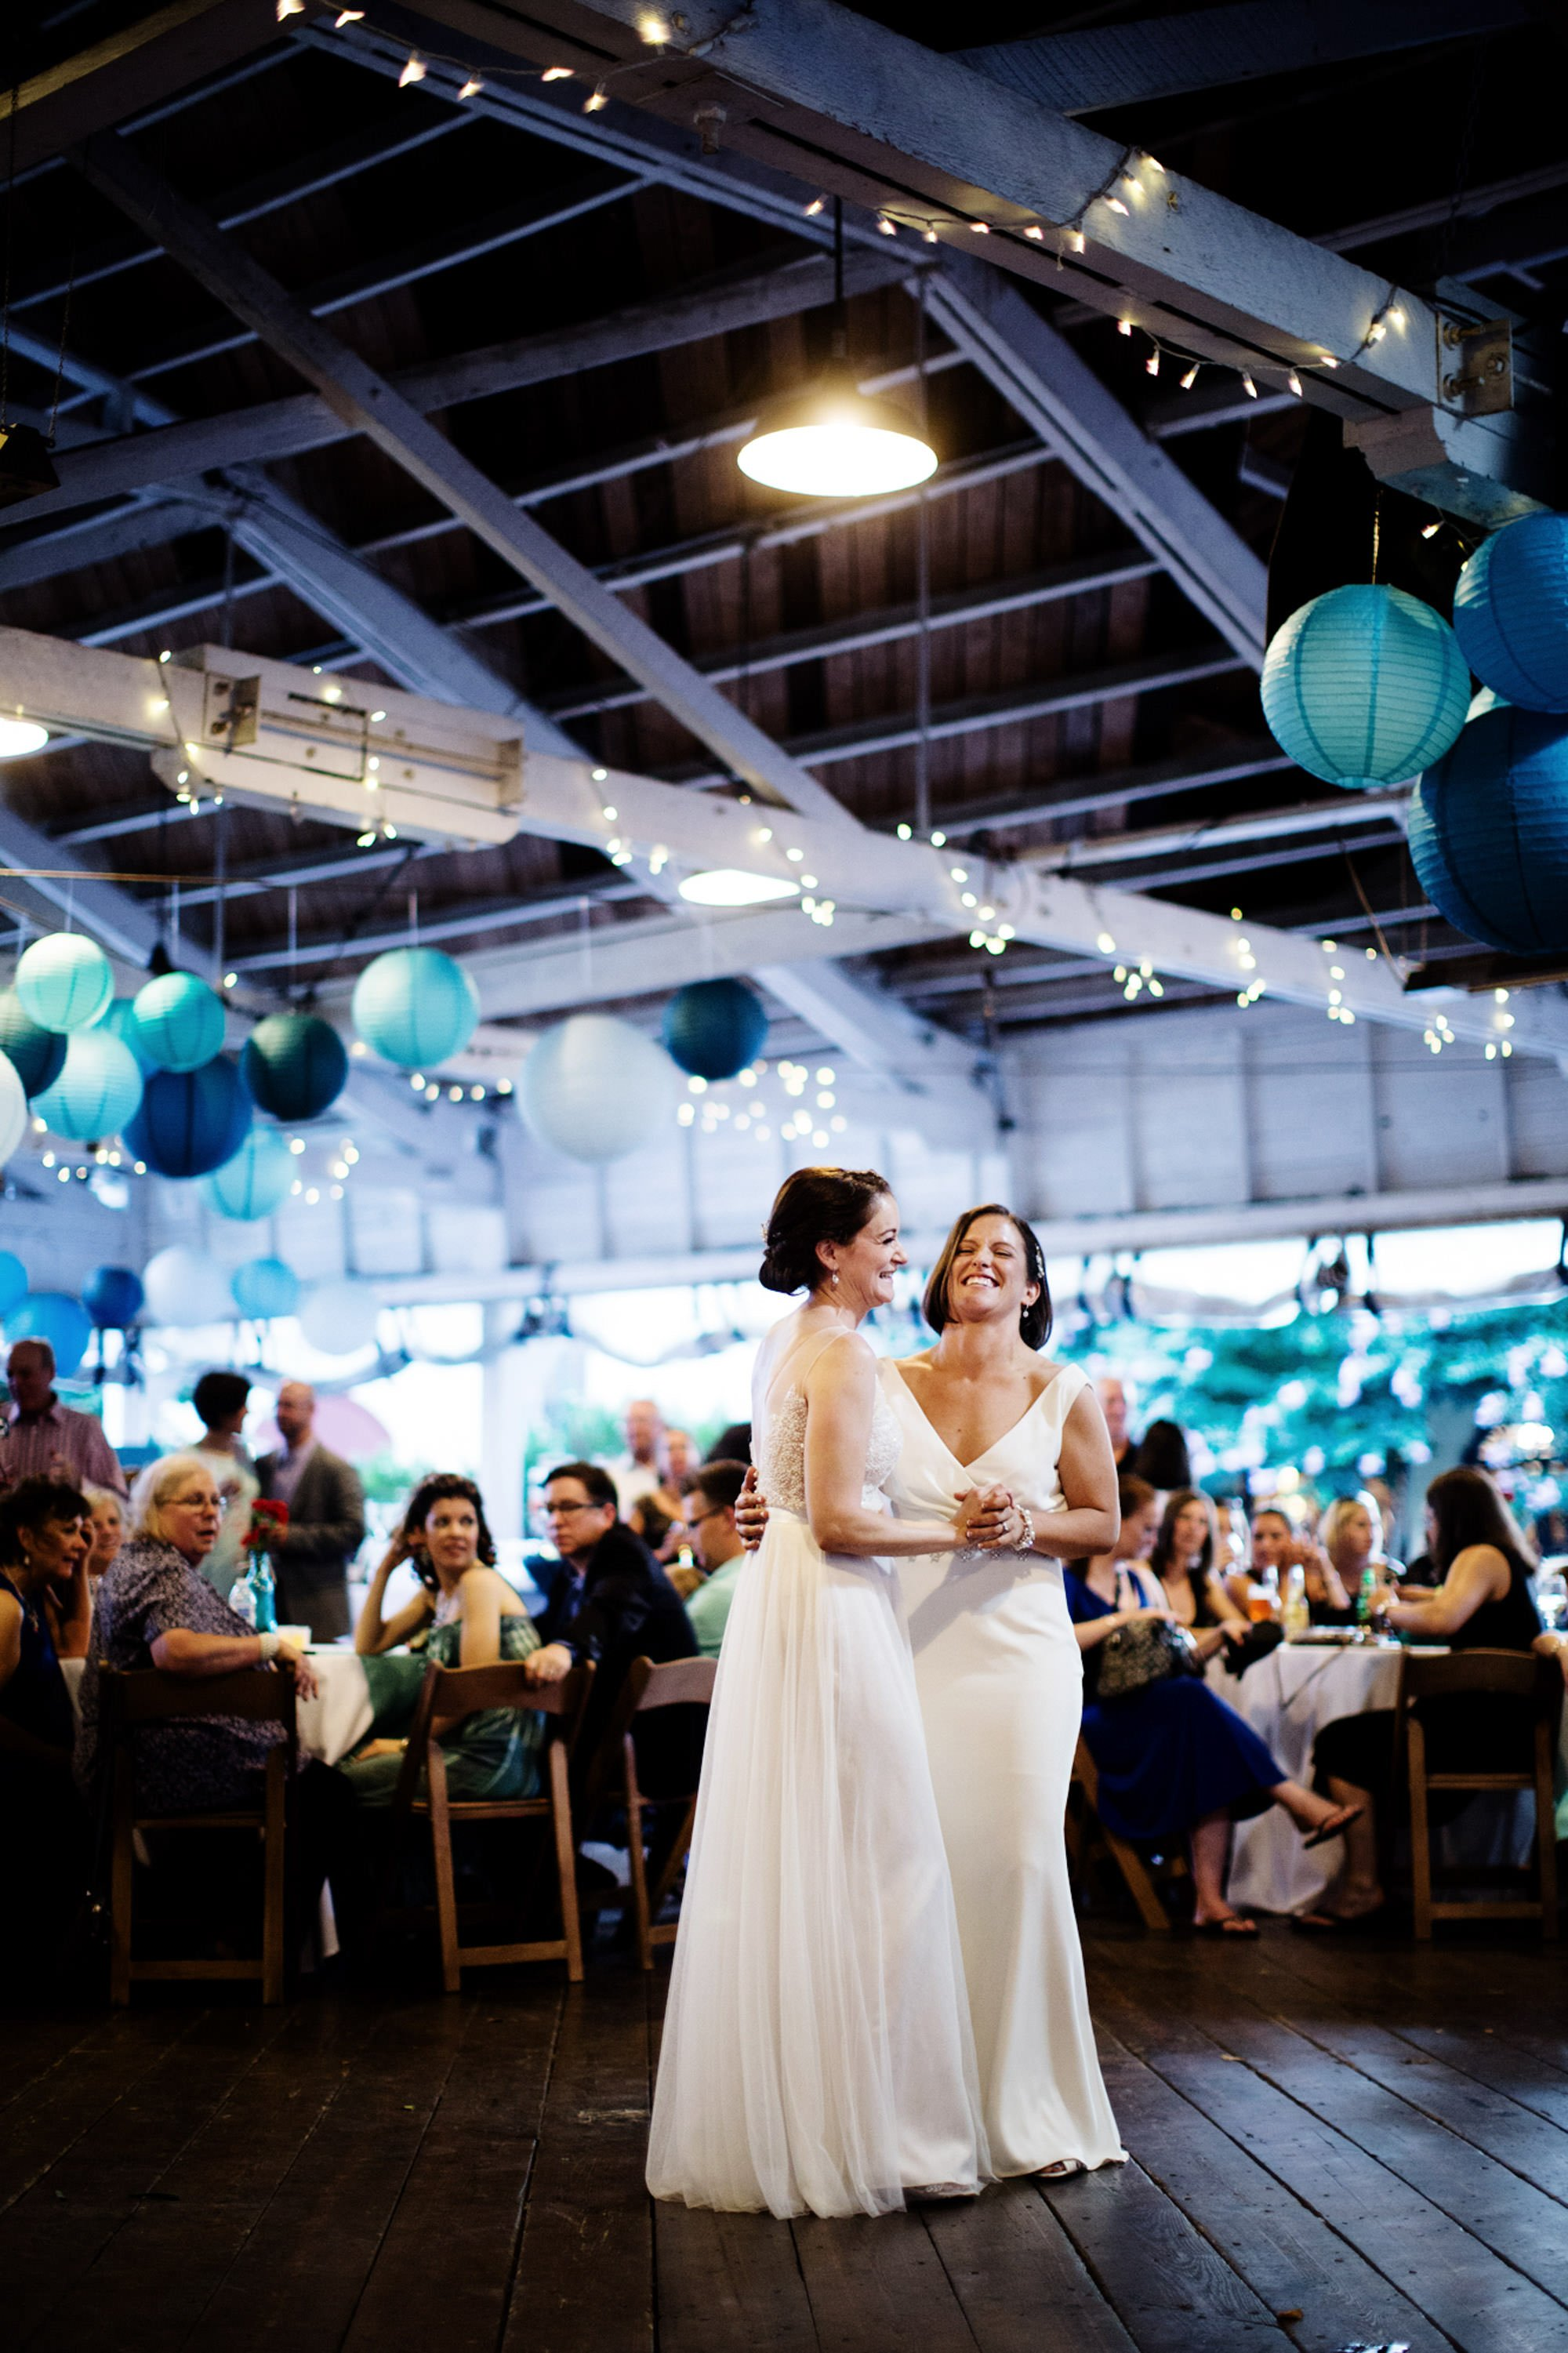 The brides share their first dance in the Bumper Car Pavilion.